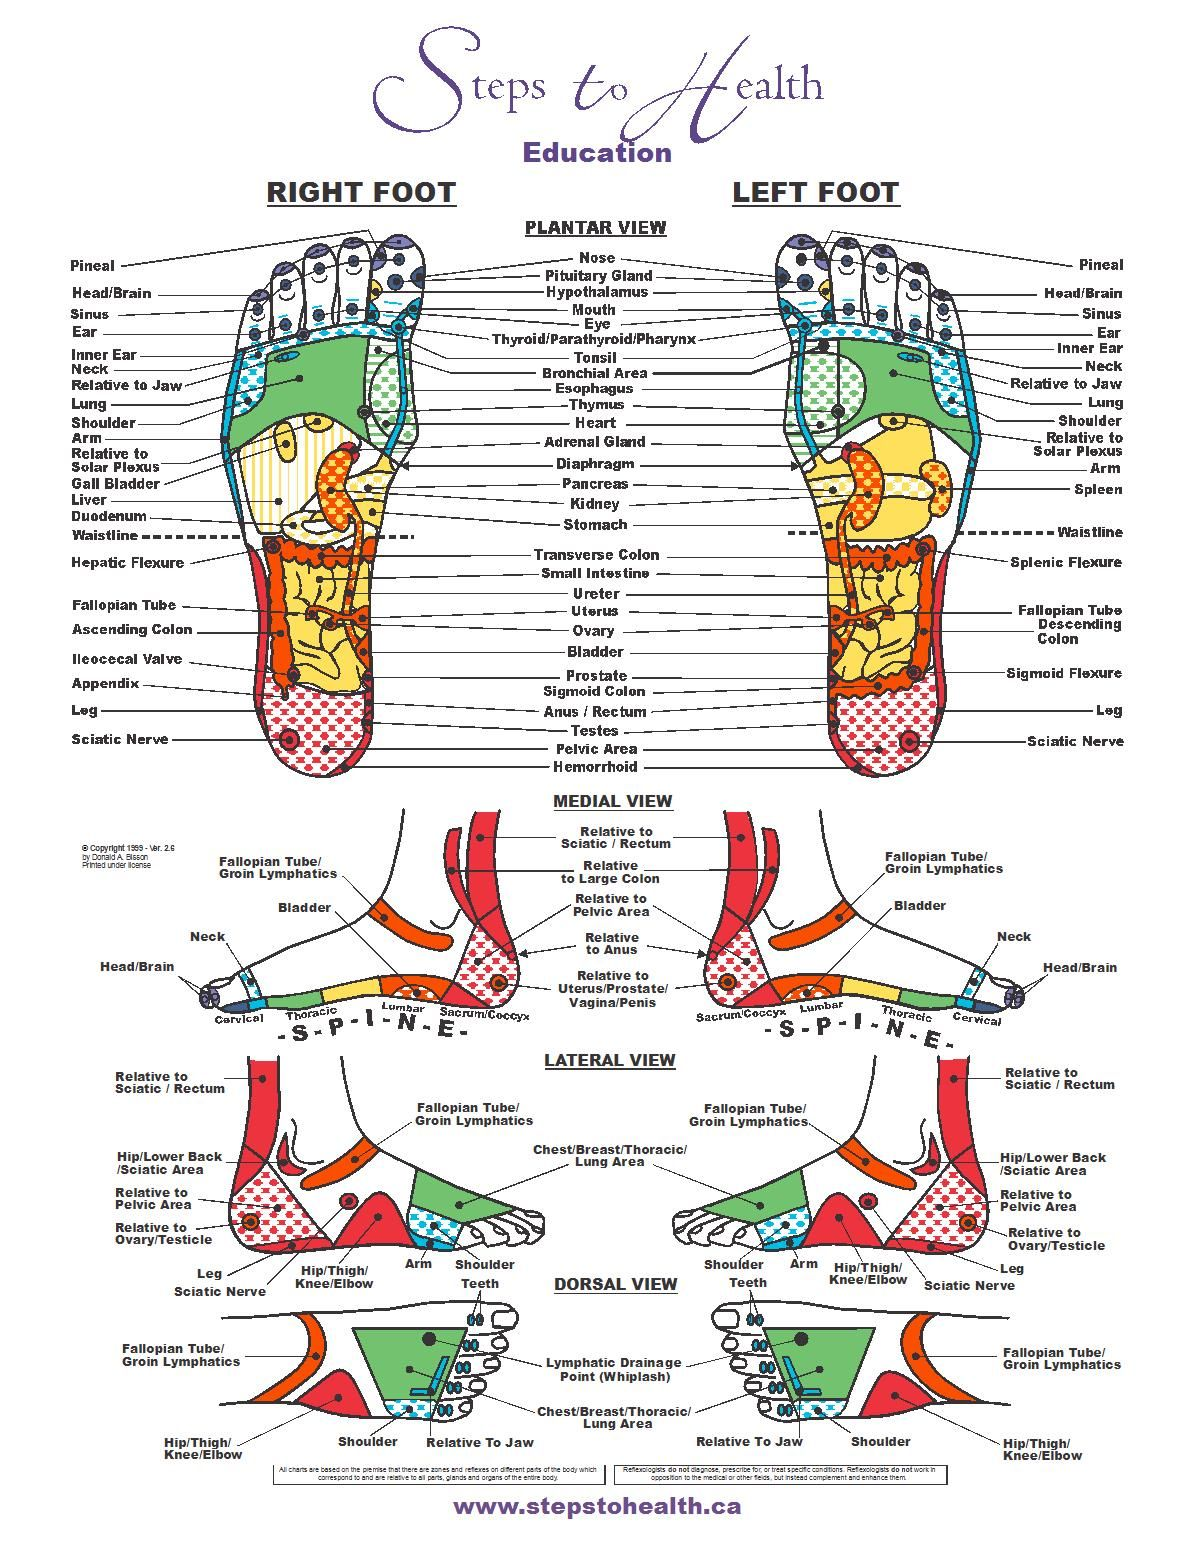 Foot Zoning Chart Our Bodies Communicate To Us Clearly And Specifically If We Are Reflexology Chart Foot Reflexology Reflexology